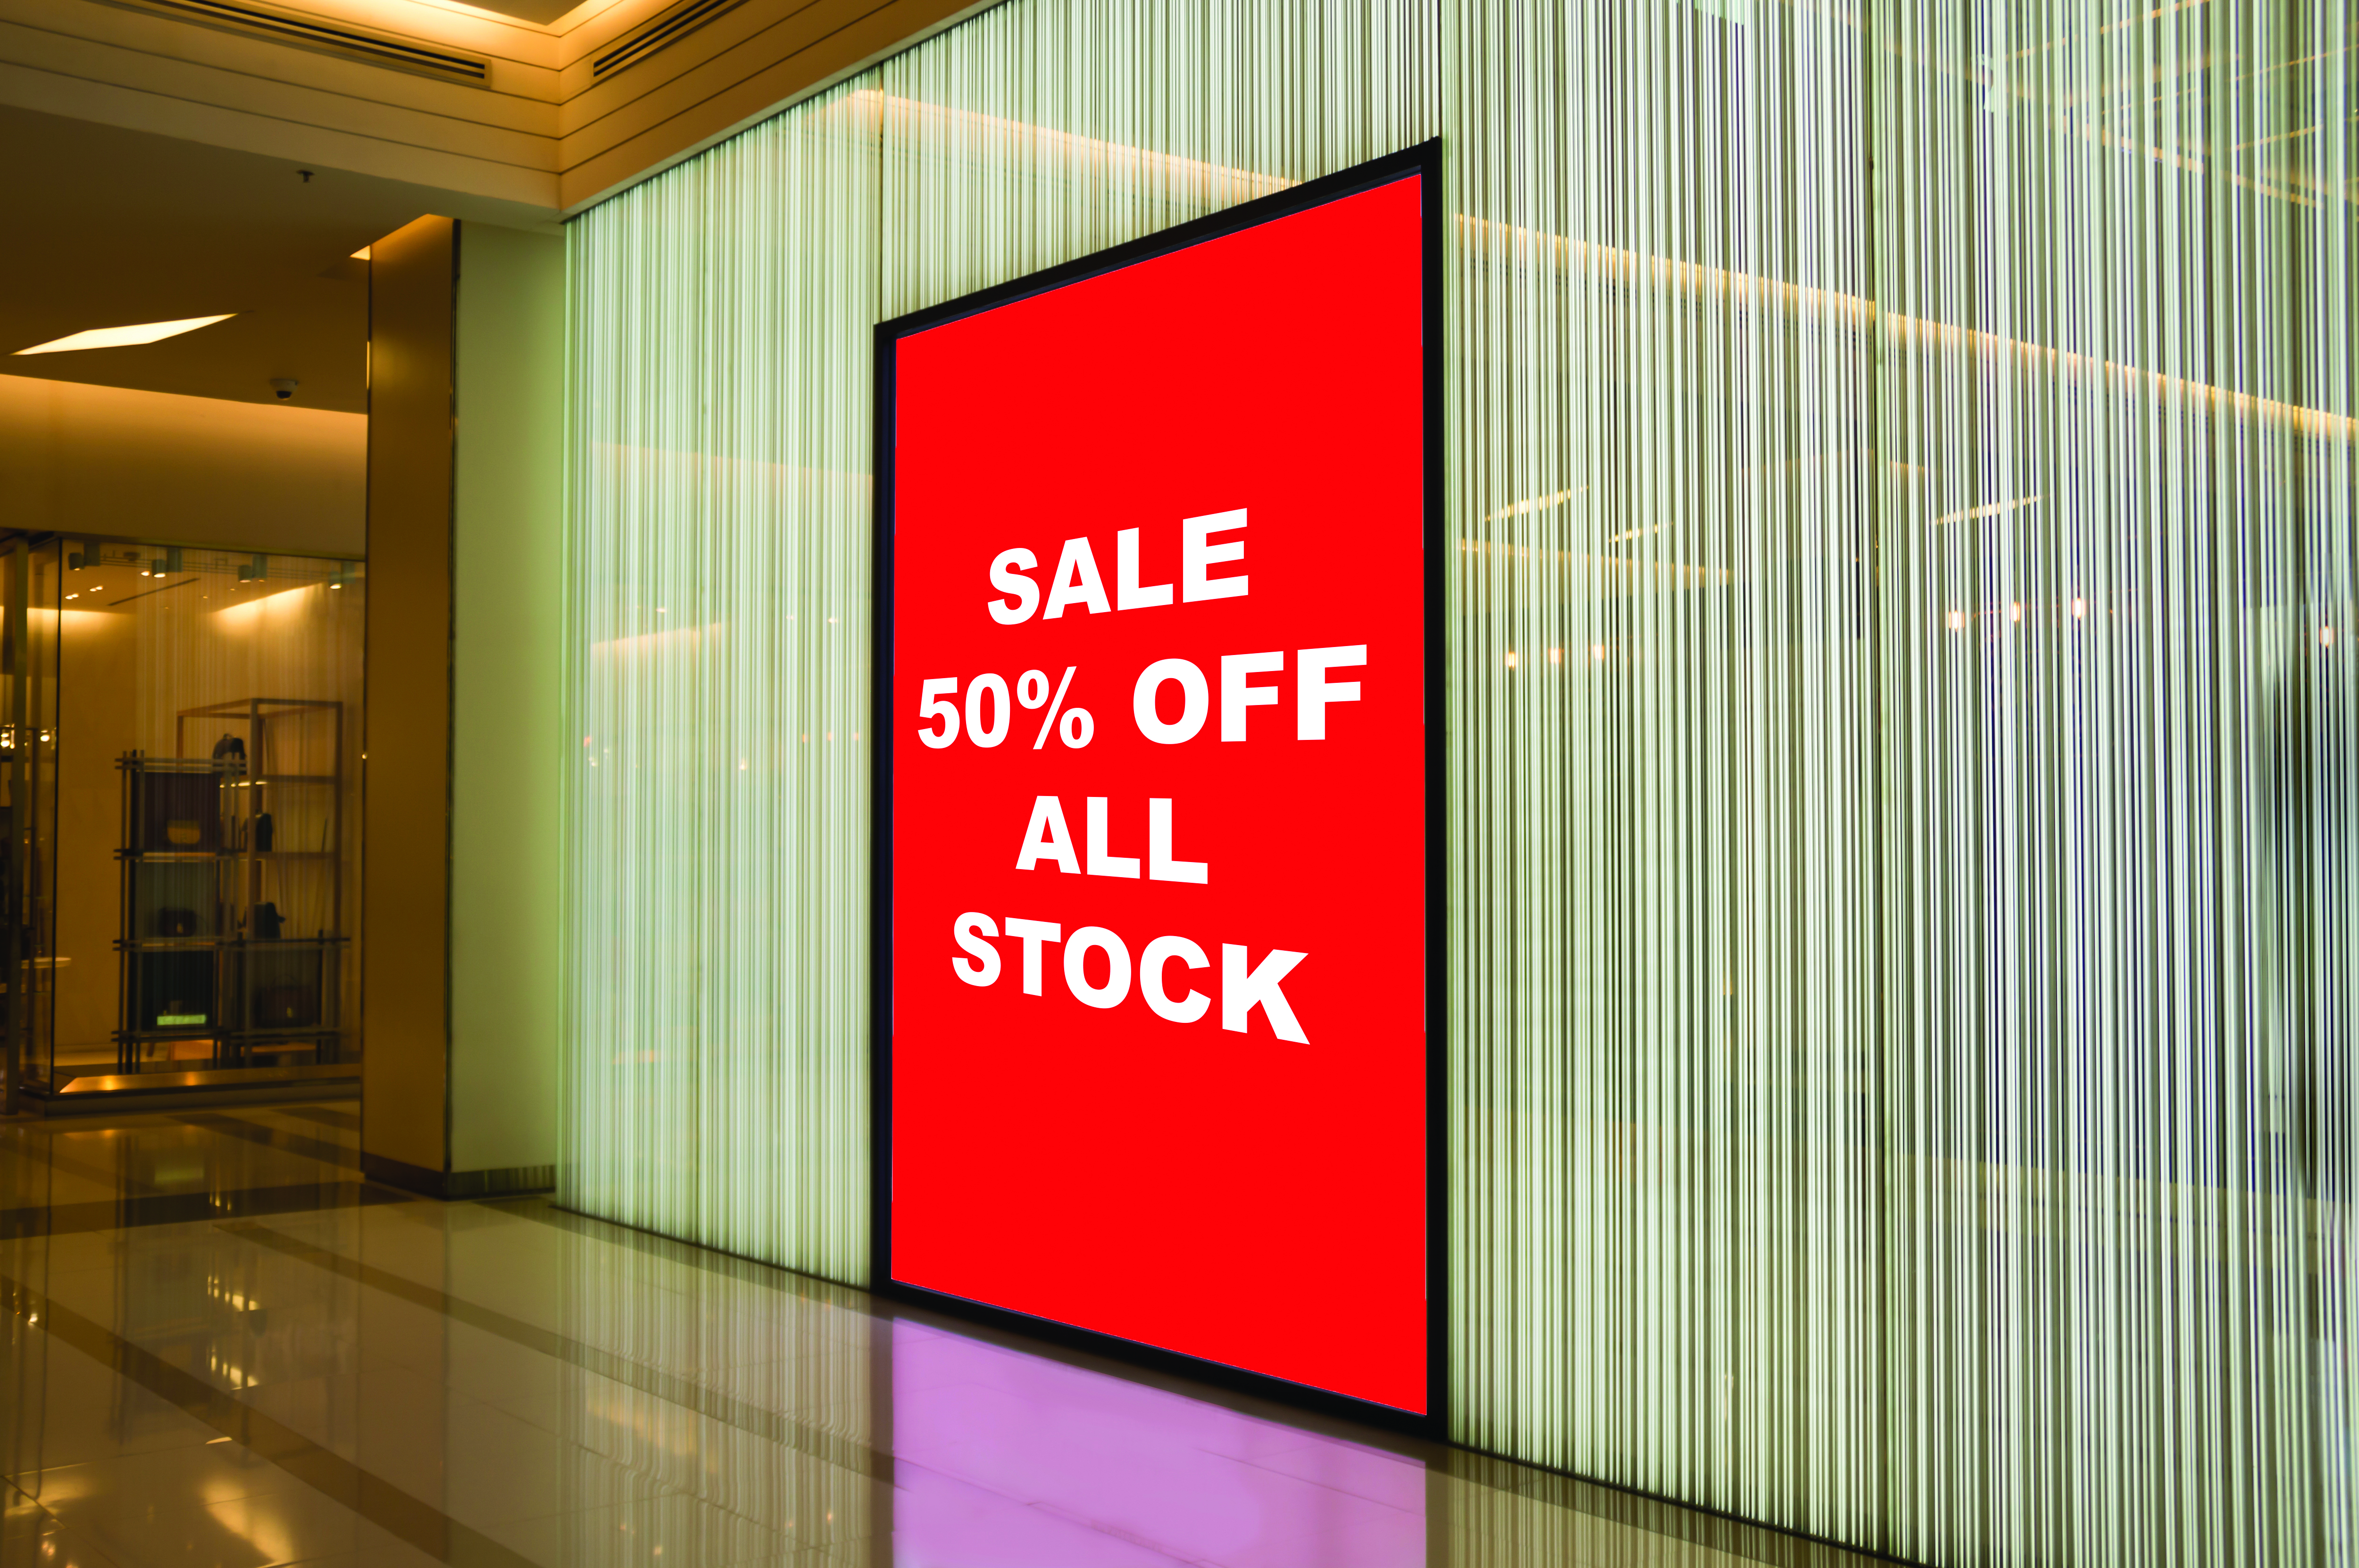 Digital signage showing store sale